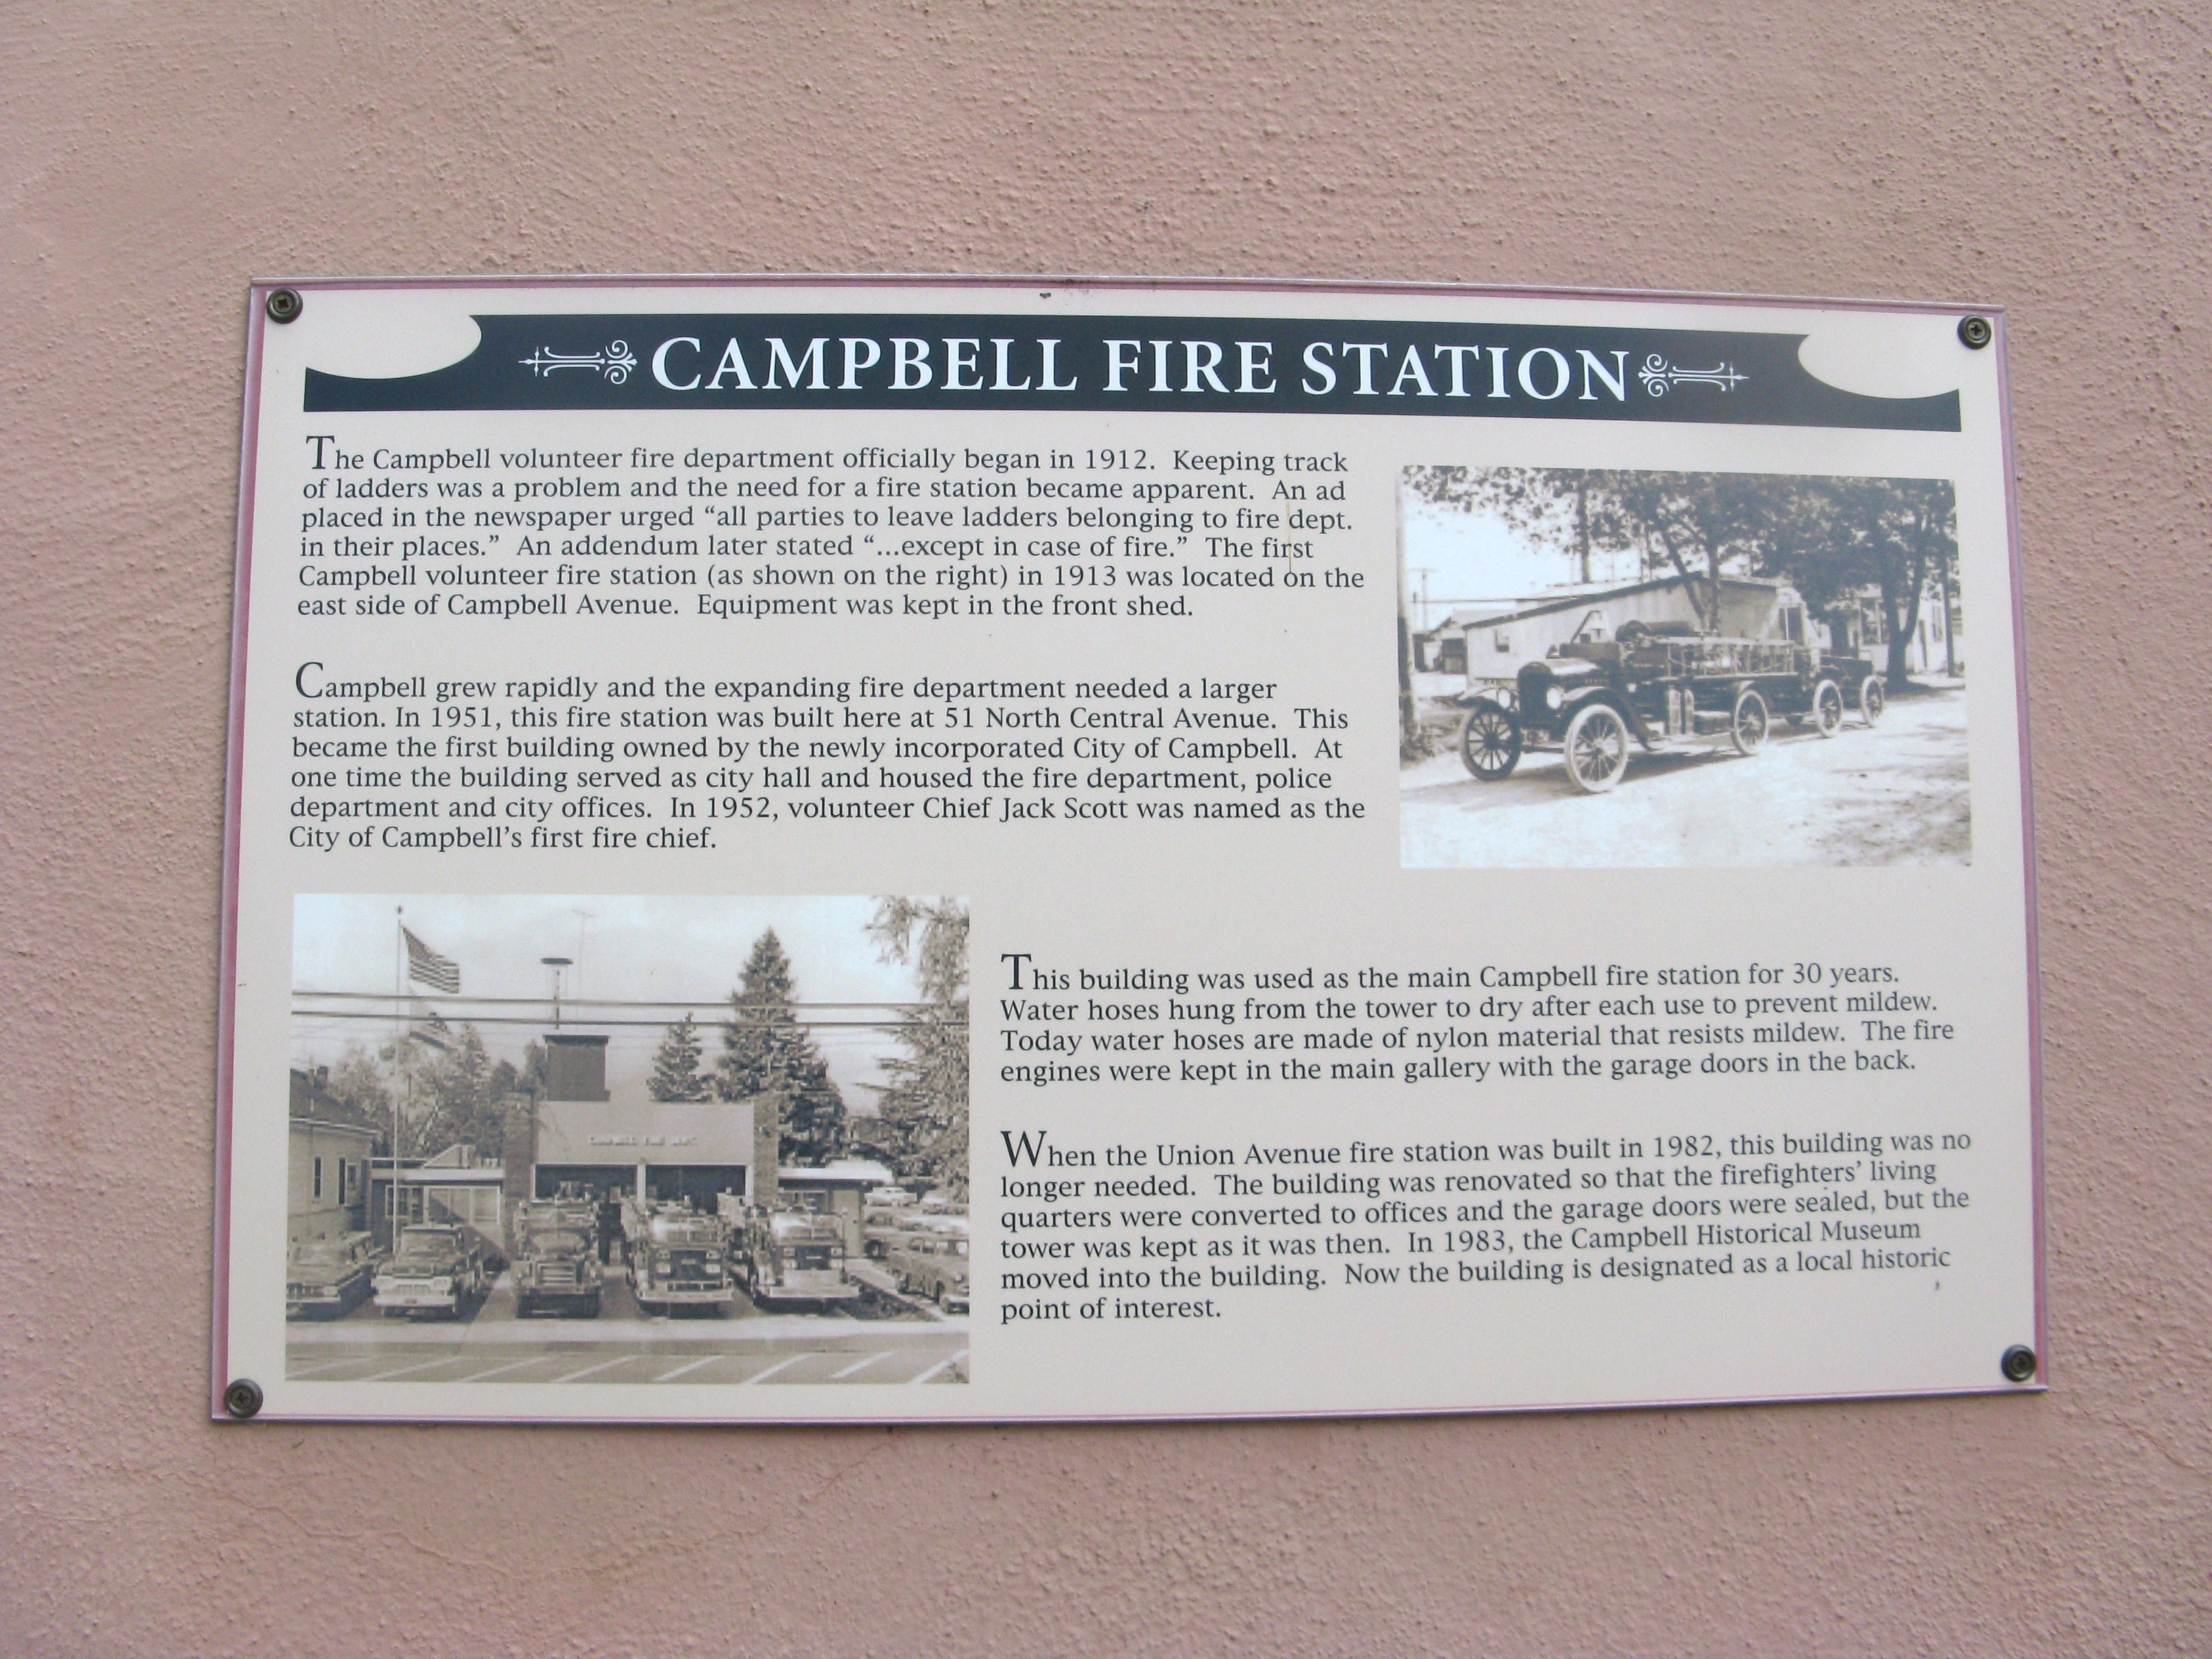 Campbell Fire Station Marker